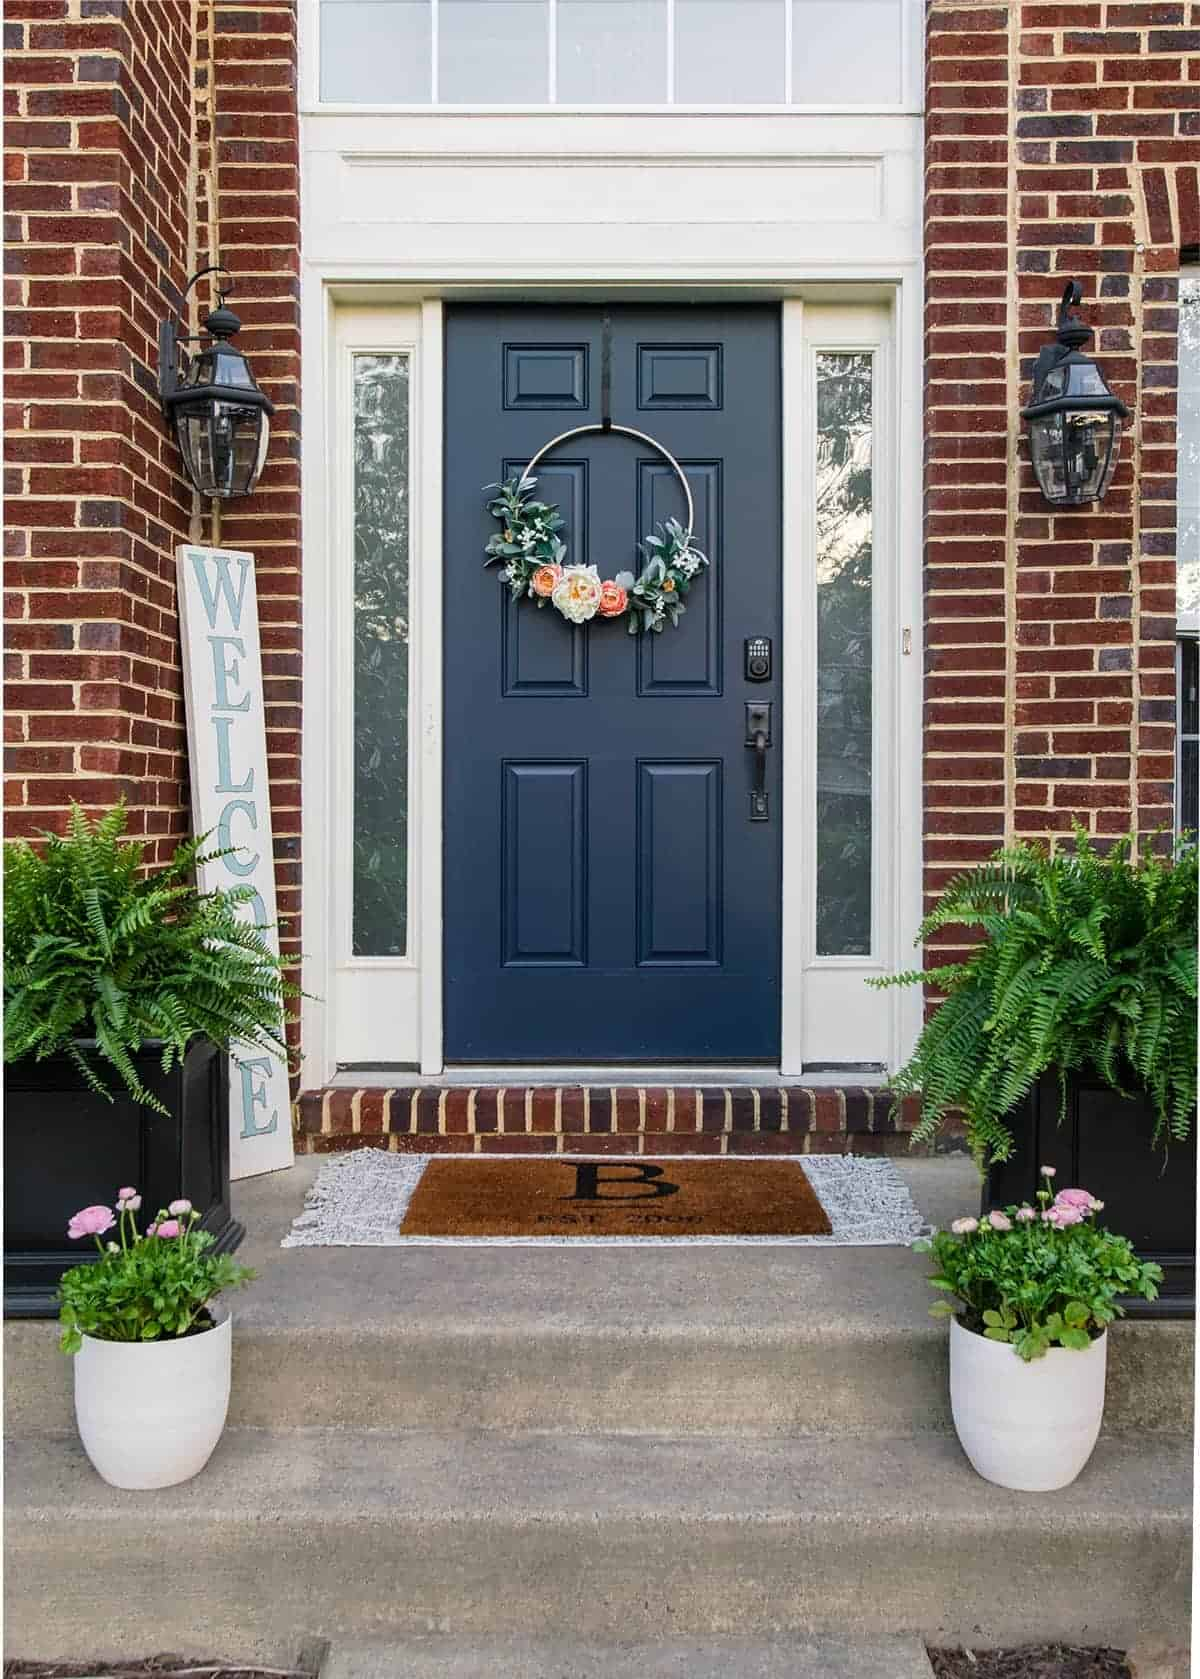 Front porch decor with blue front door, white accents against brick exterior. Layered door mats, potted ferns and DIY Welcome sign and planters.